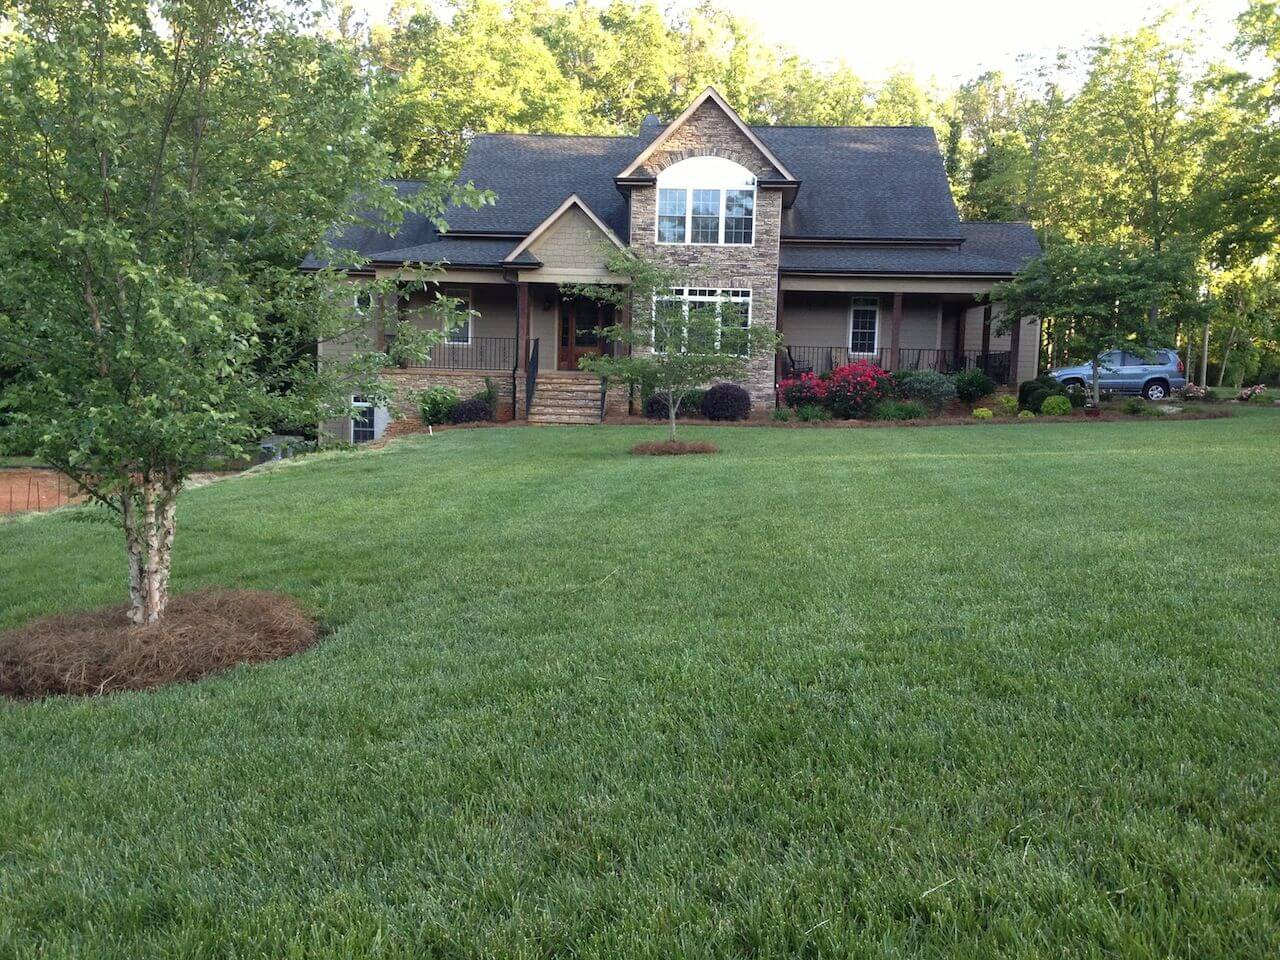 landscaping contractors near me